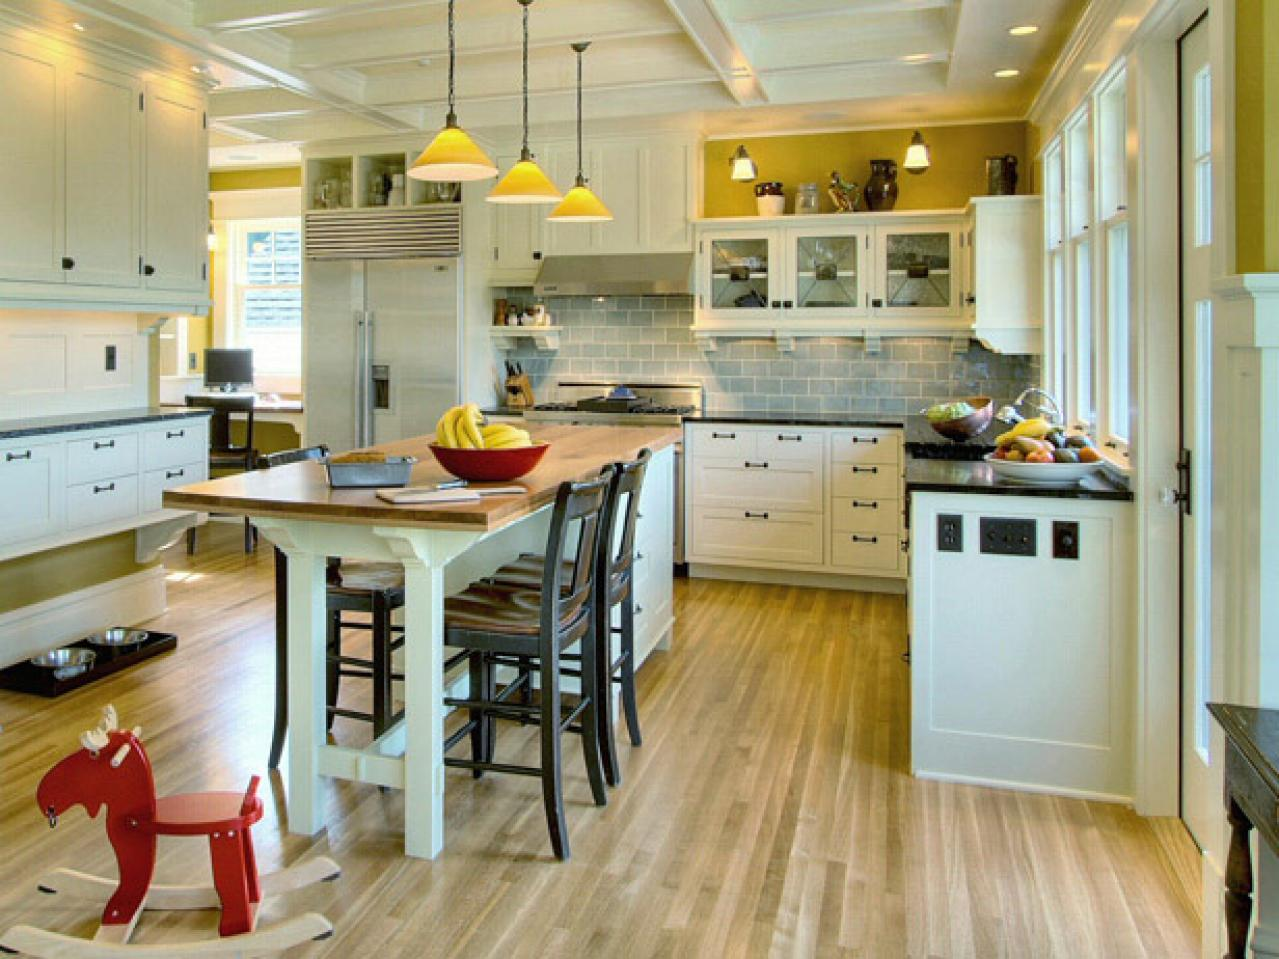 10 kitchen islands kitchen ideas design with cabinets islands backsplashes hgtv - Kitchen island color ideas ...